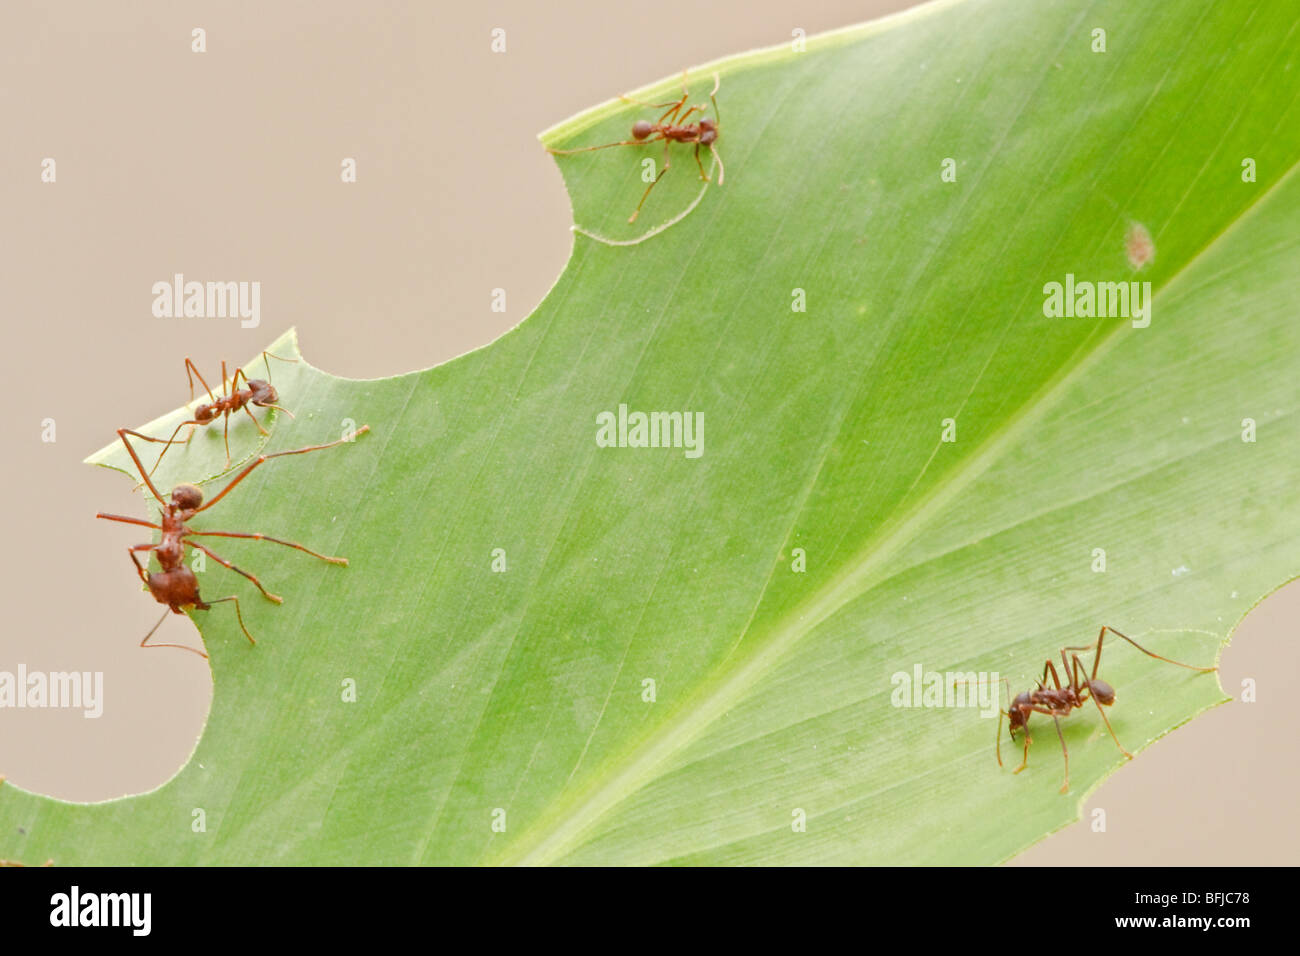 Leafcutter Ants Working On A Leaf In Ecuador Stock Photo 26834956